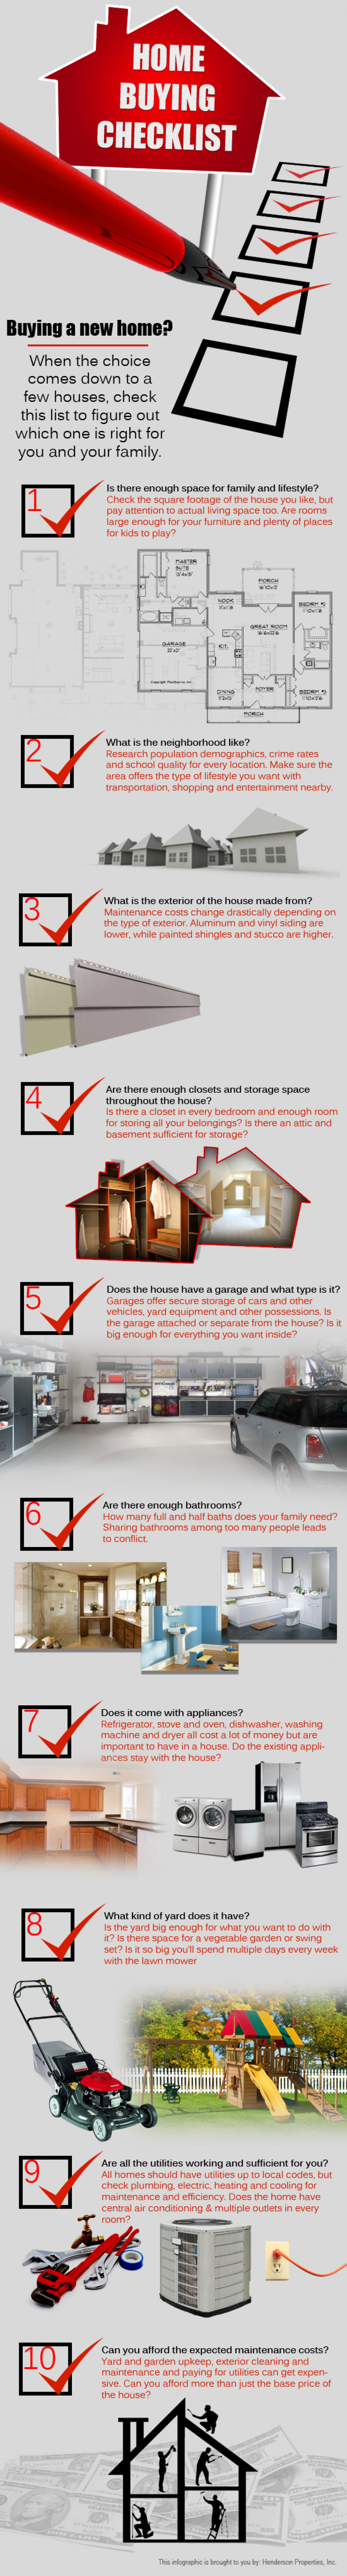 Home Buying Tips Infographic